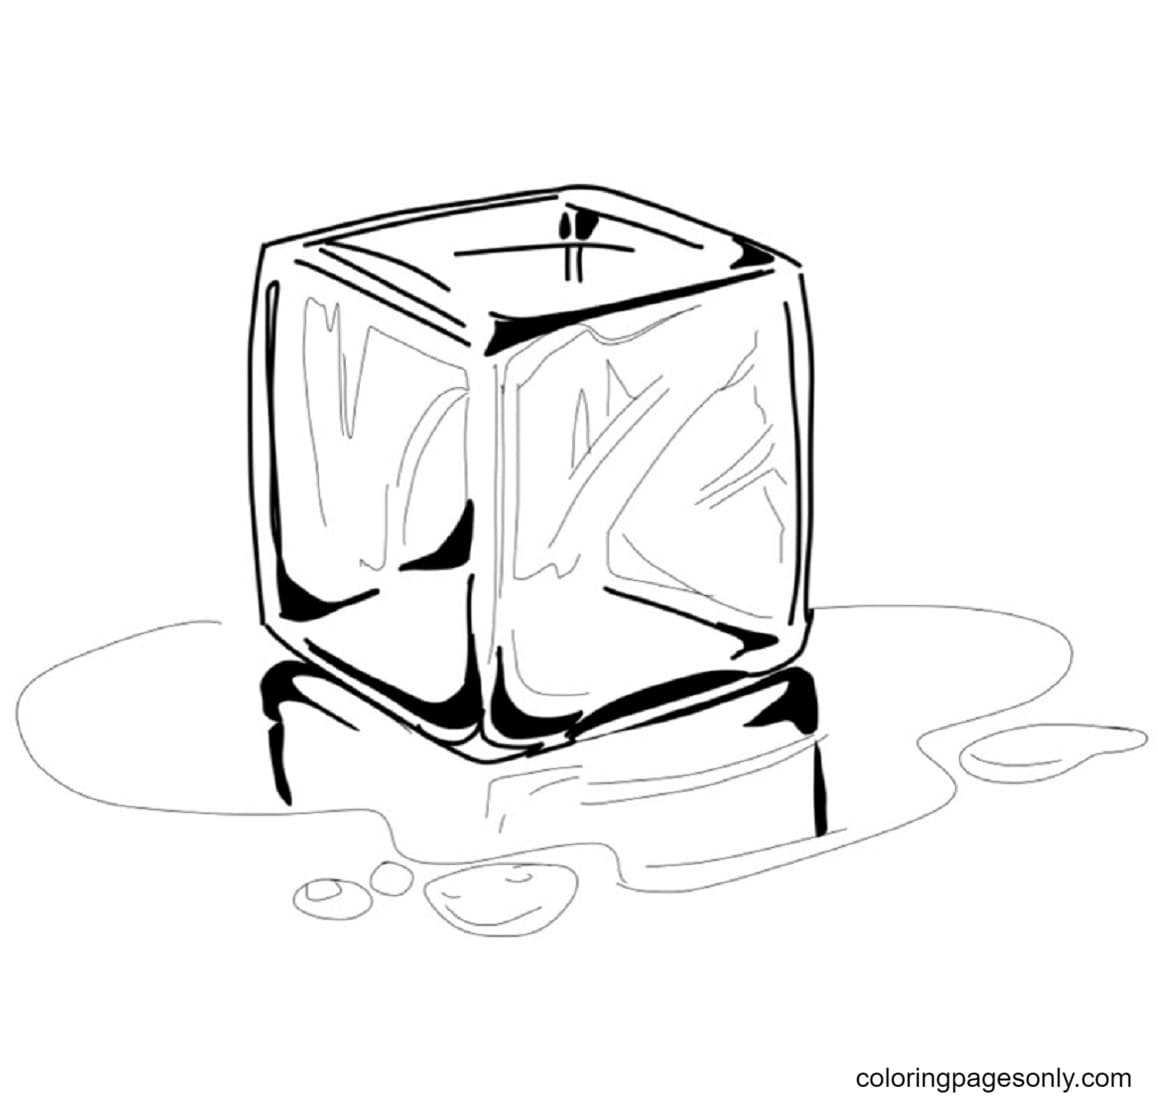 Ice Cubes Melting 3 Coloring Page